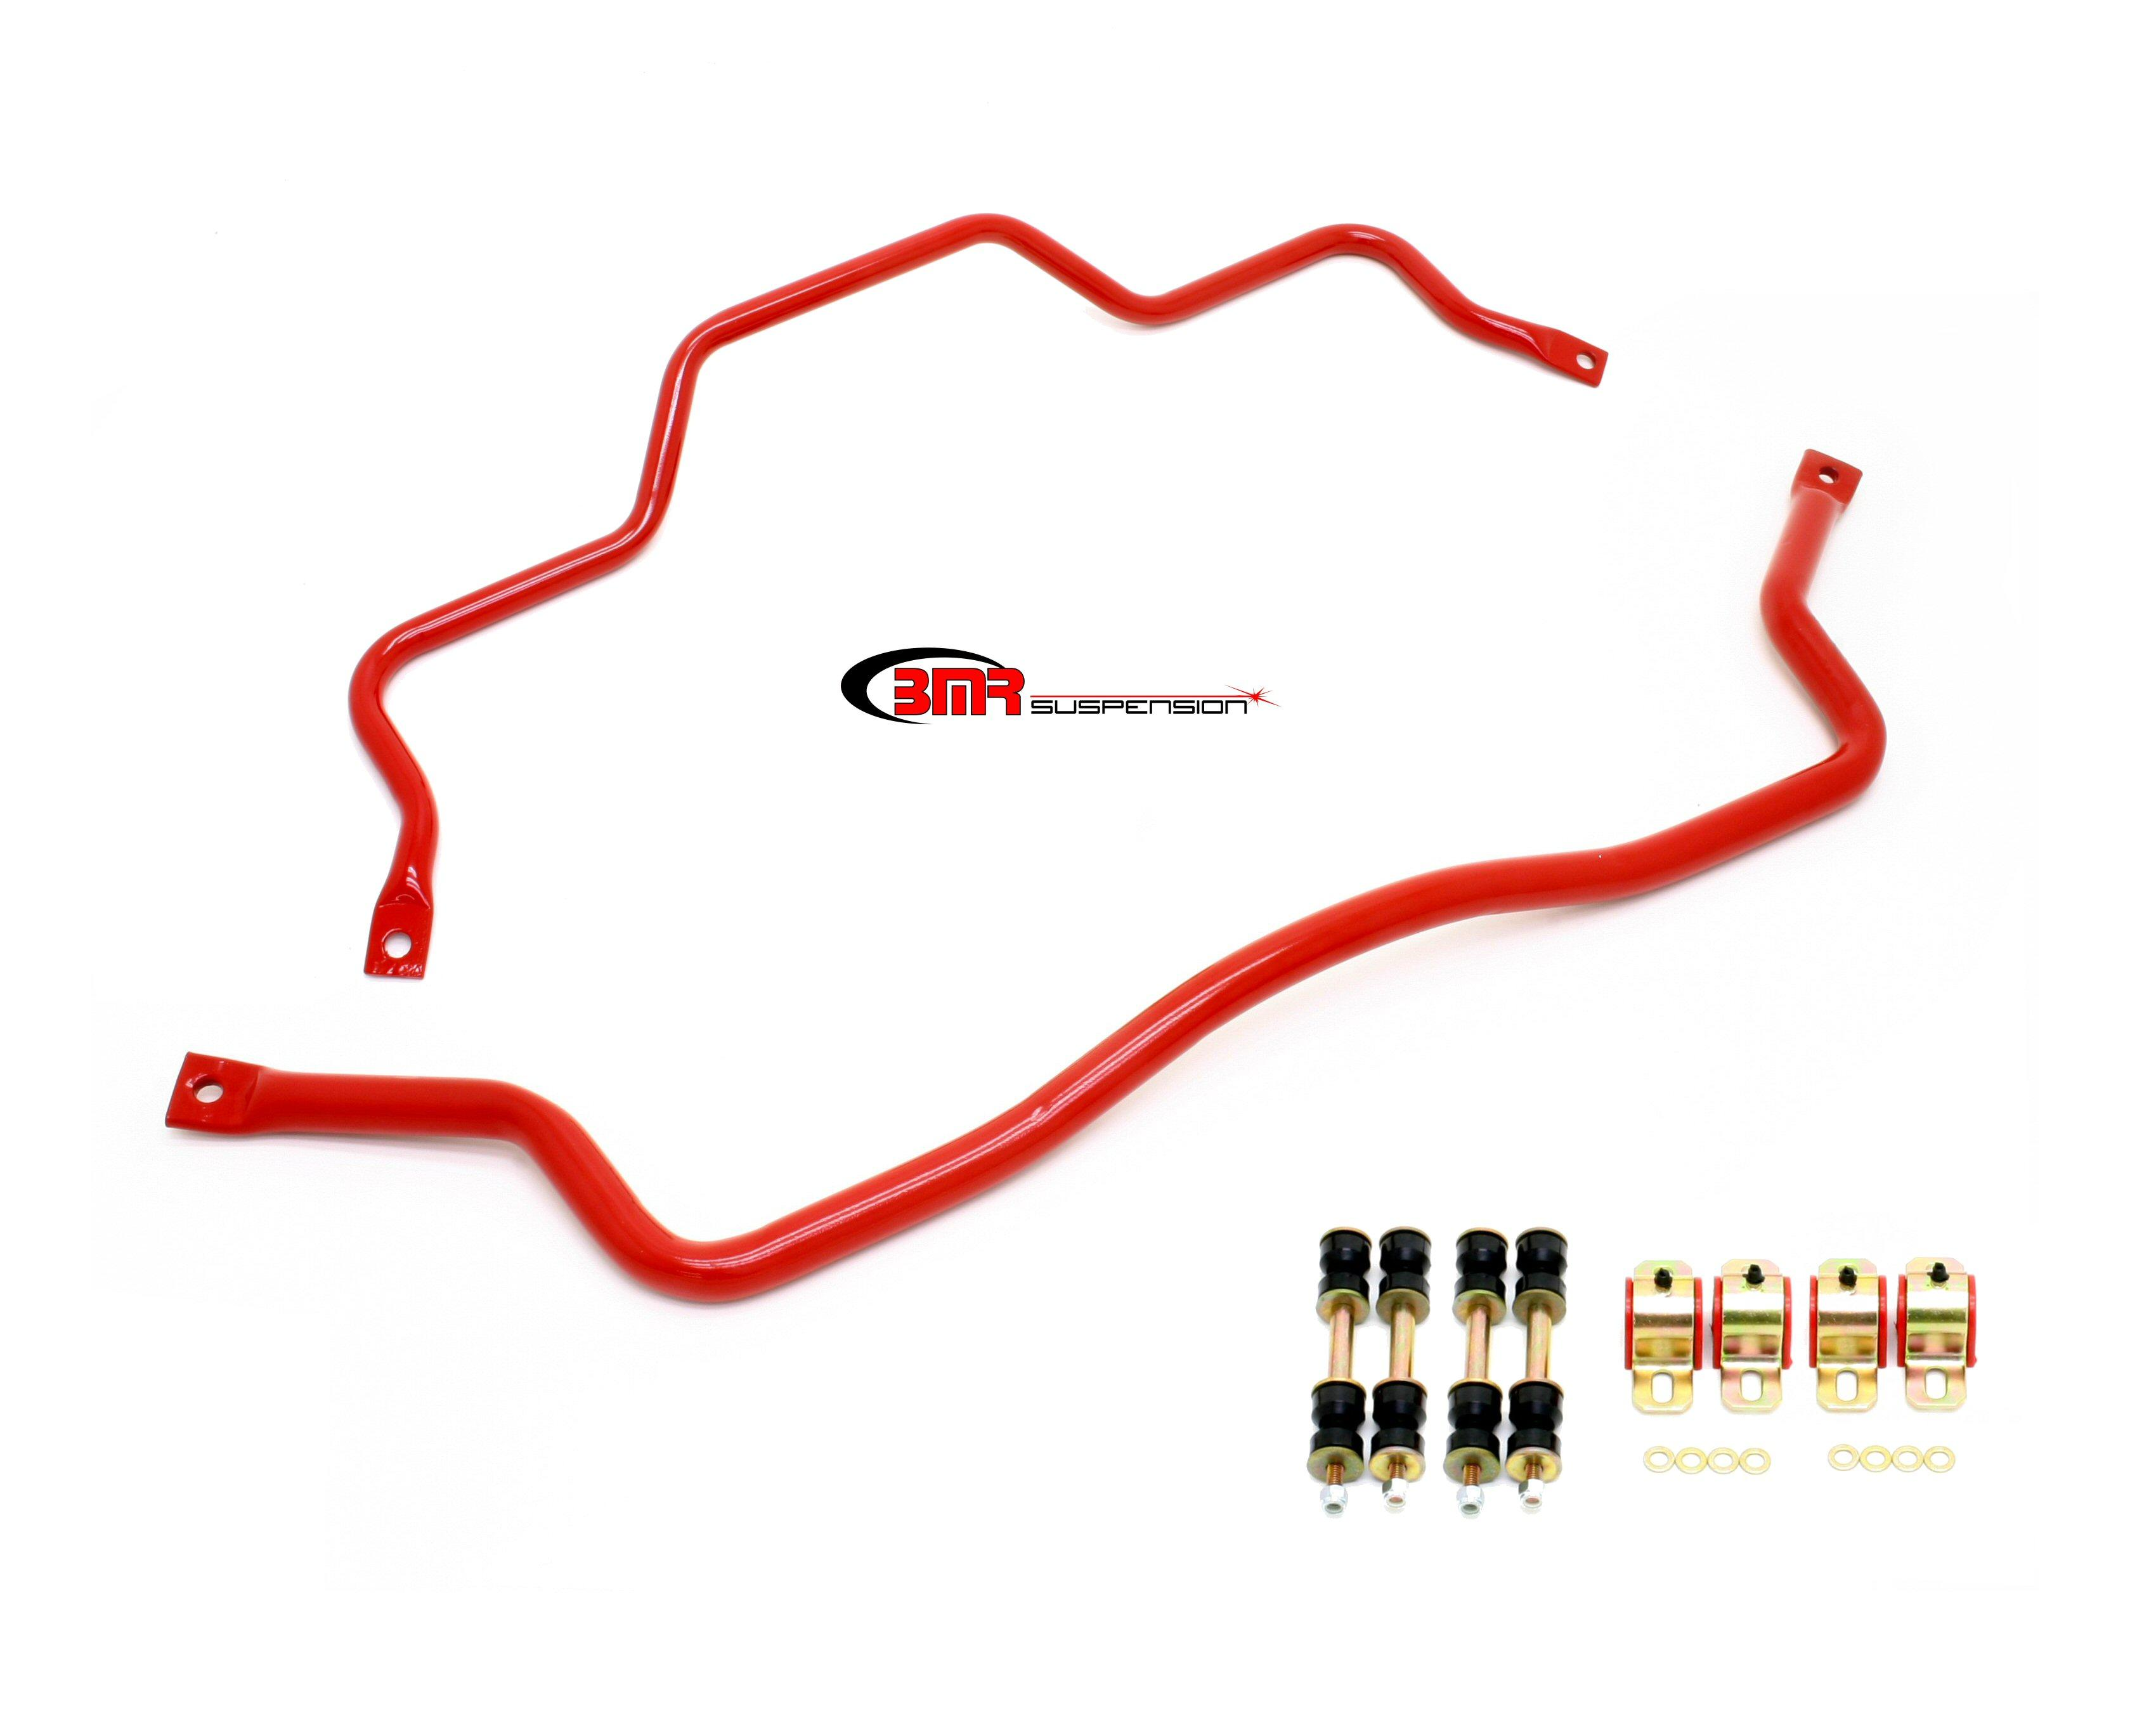 Bmr Suspension Sb026 Sway Bar Kit With Bushings Front